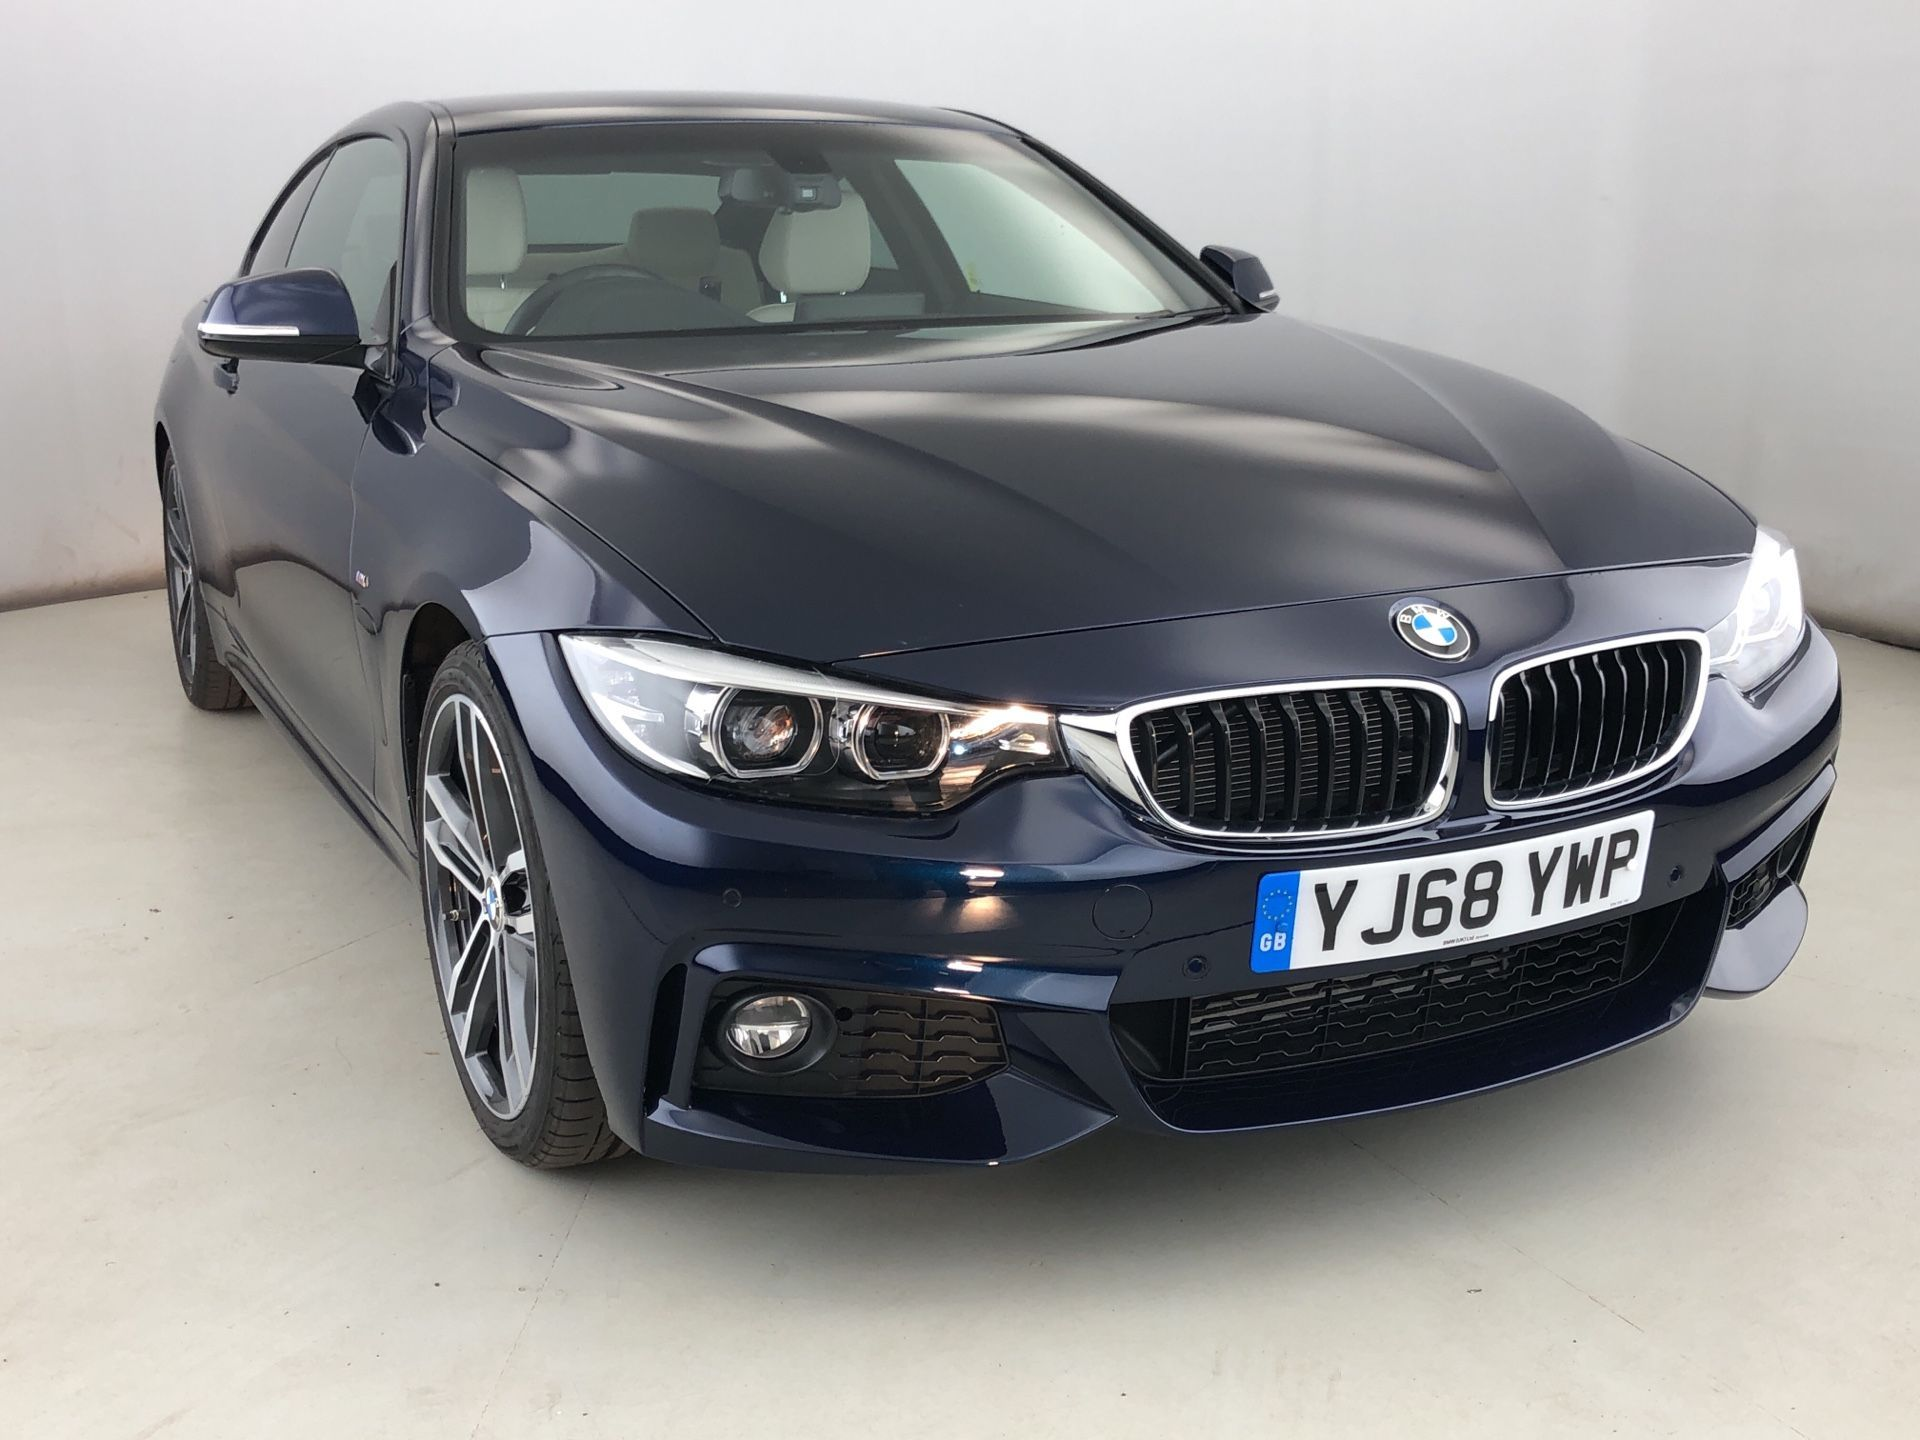 Image 1 - BMW 420d M Sport Coupe (YJ68YWP)